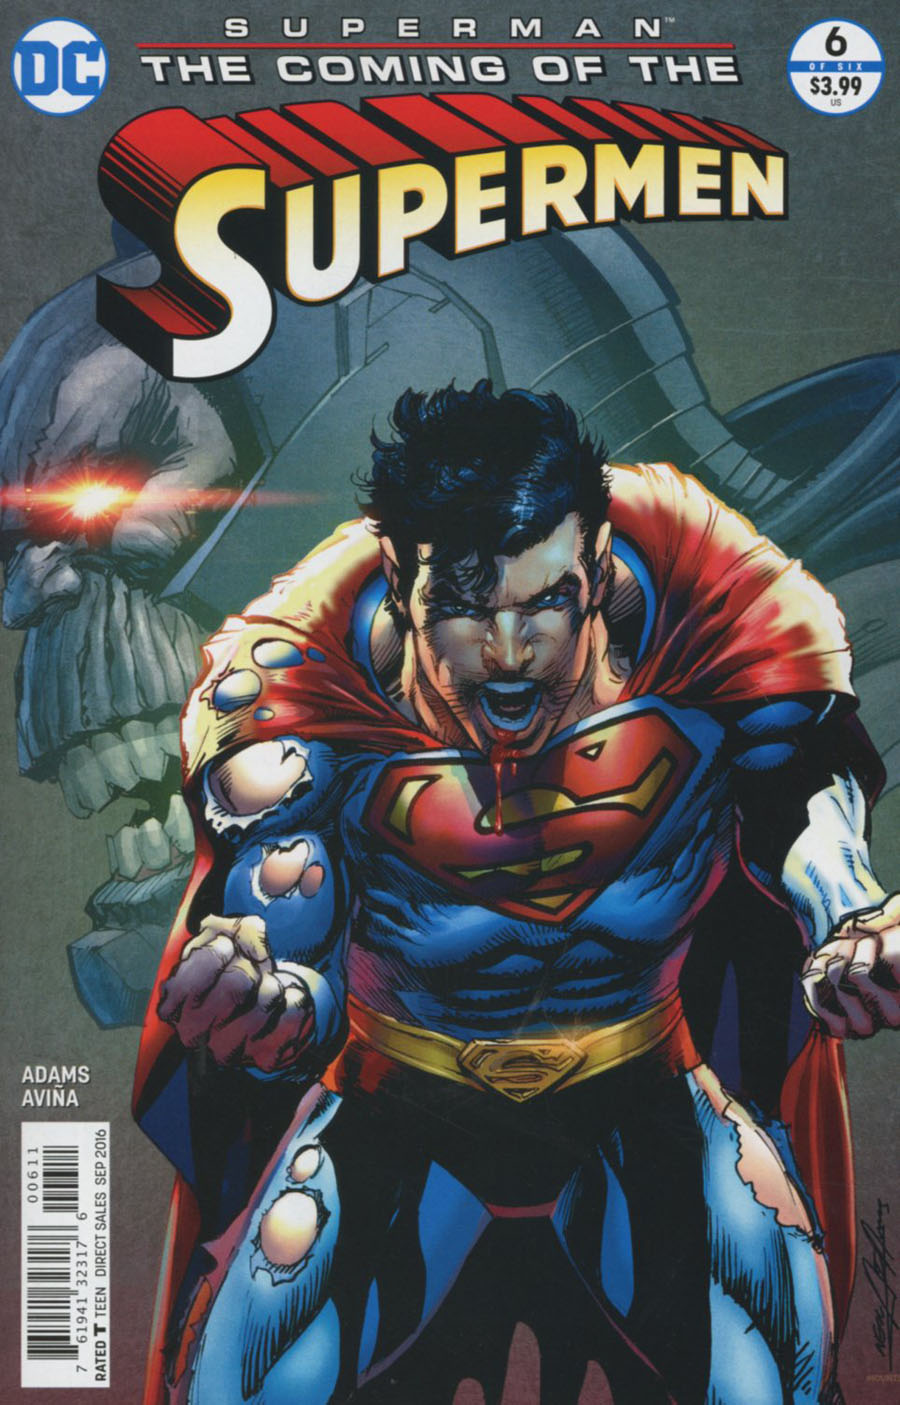 Superman The Coming Of The Supermen #6